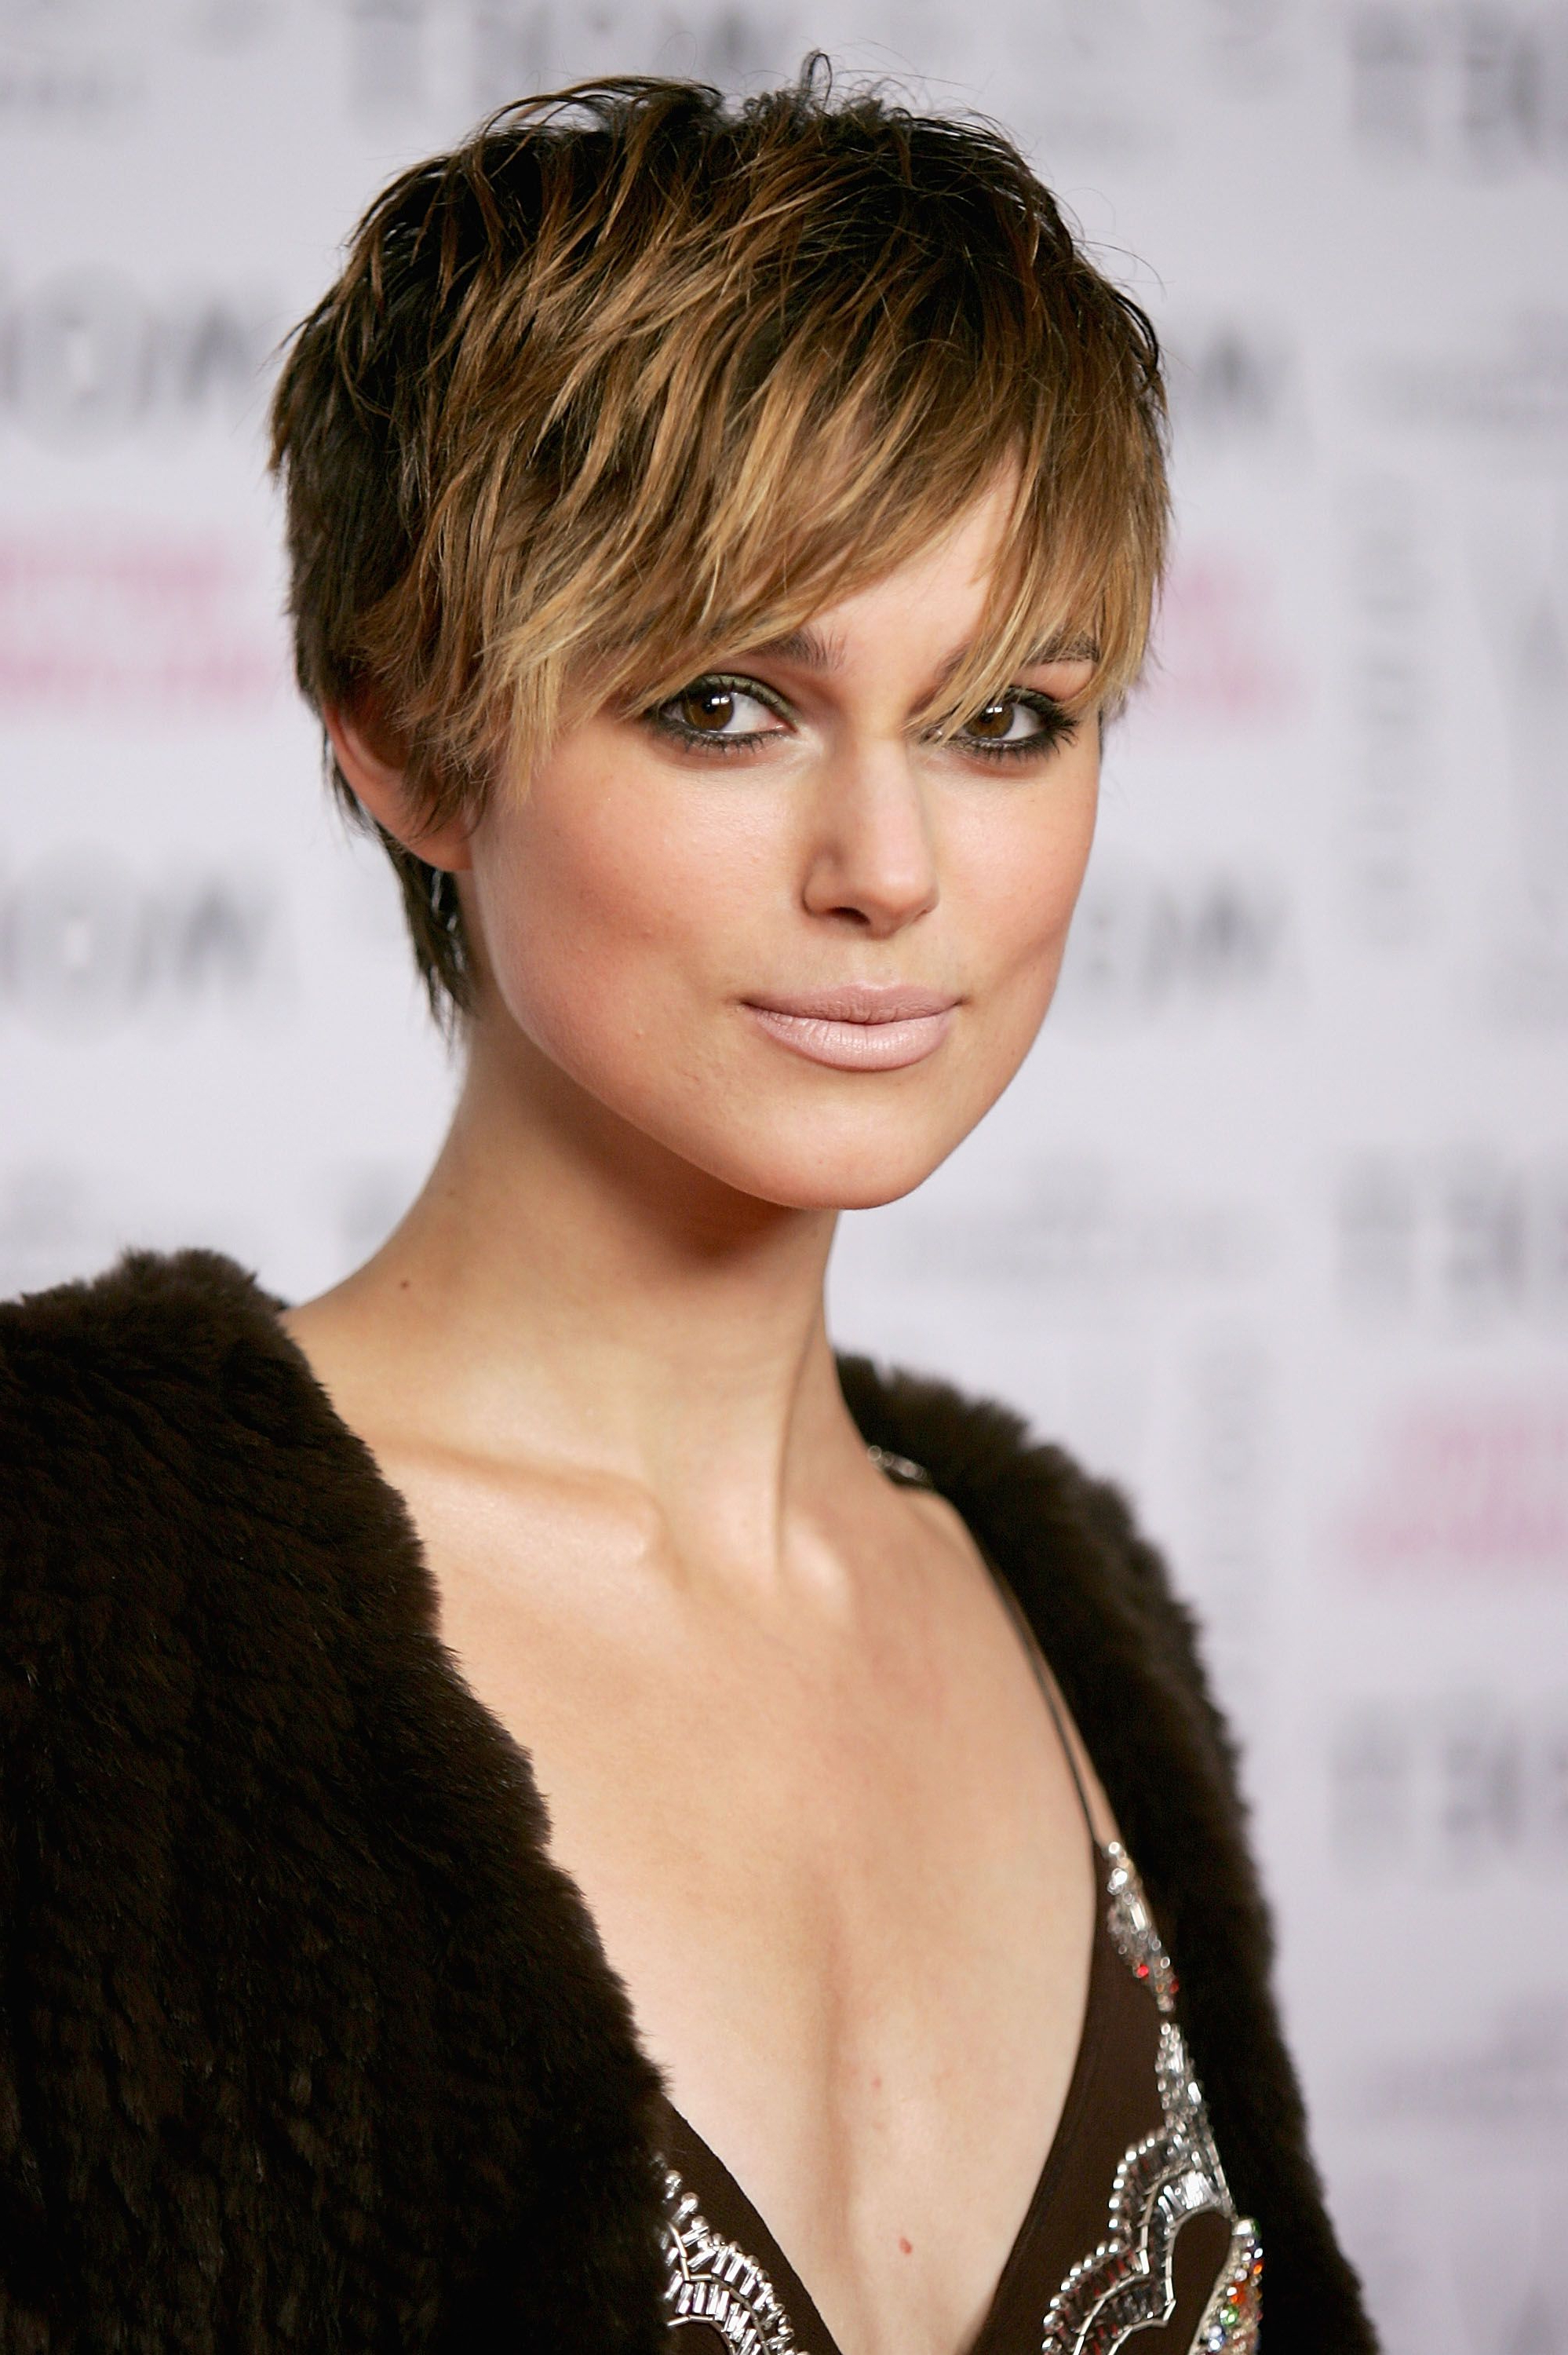 53 Best Pixie Cut Hairstyle Ideas 2018 – Cute Celebrity Pixie Haircuts In Textured Pixie Hairstyles With Highlights (View 9 of 20)